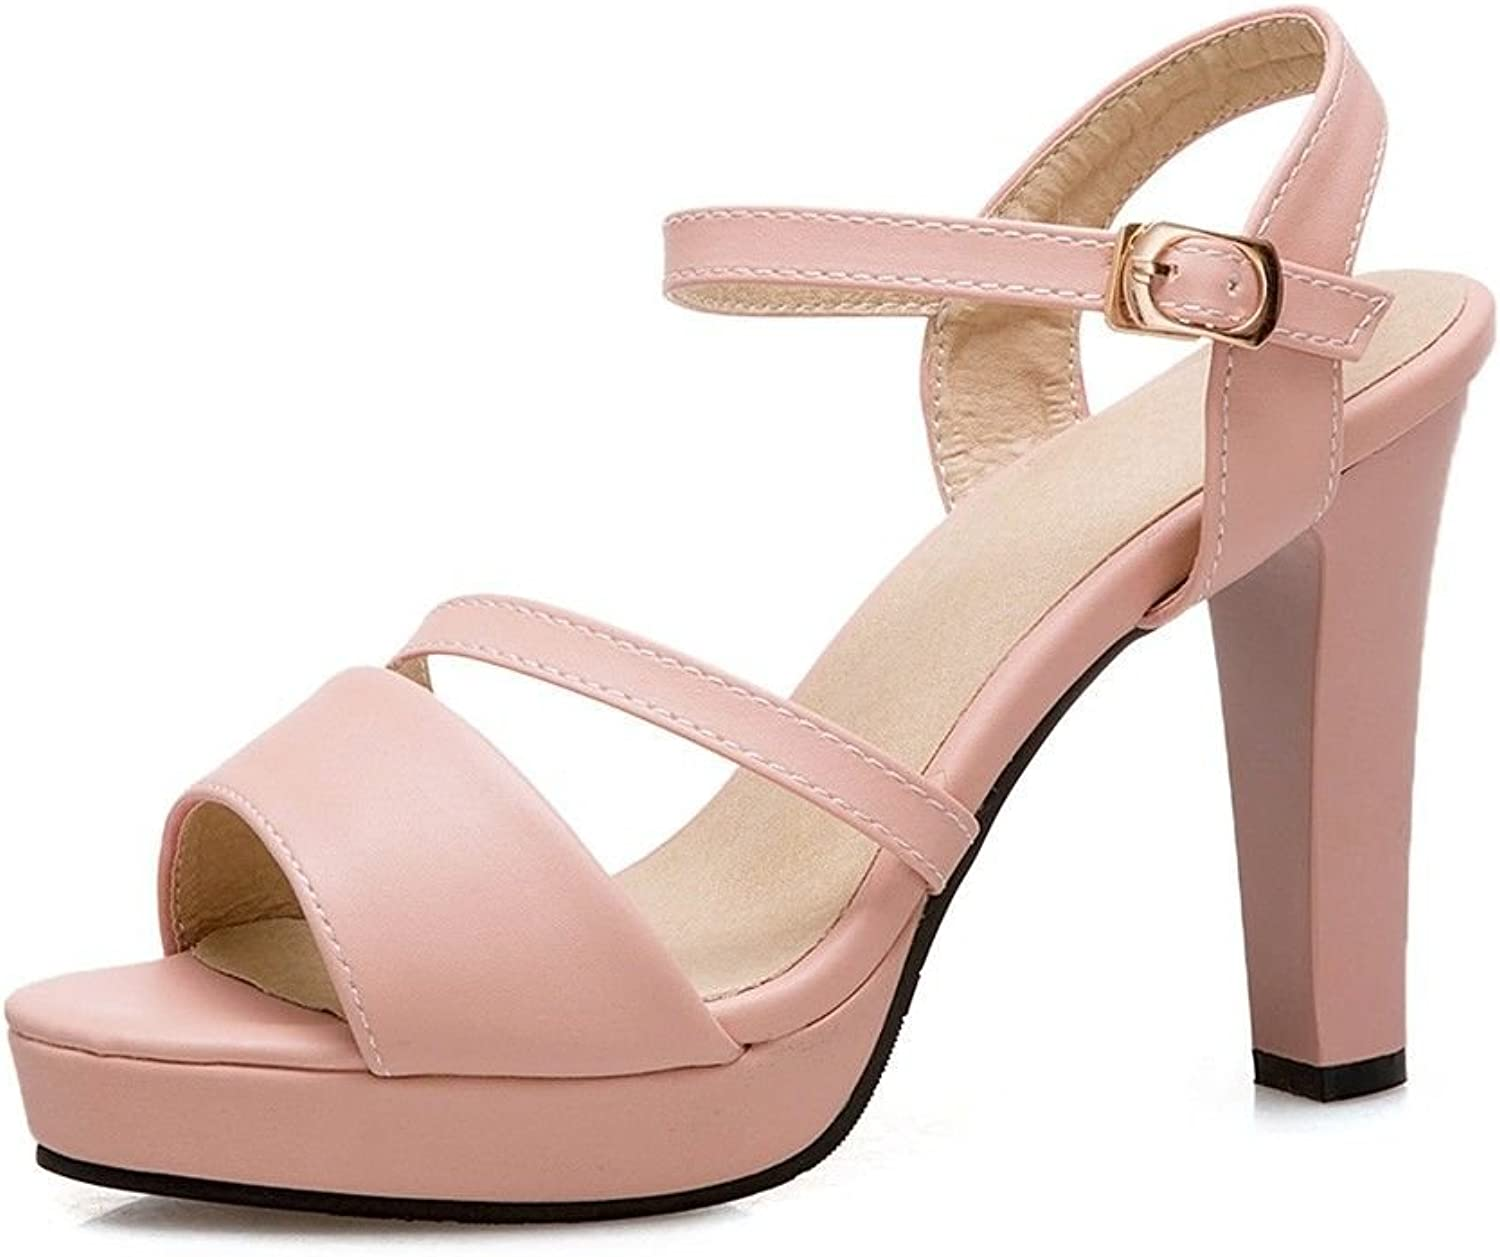 In The Summer The high-Heel shoes Buckle Water Resistant, Glossy Sandals